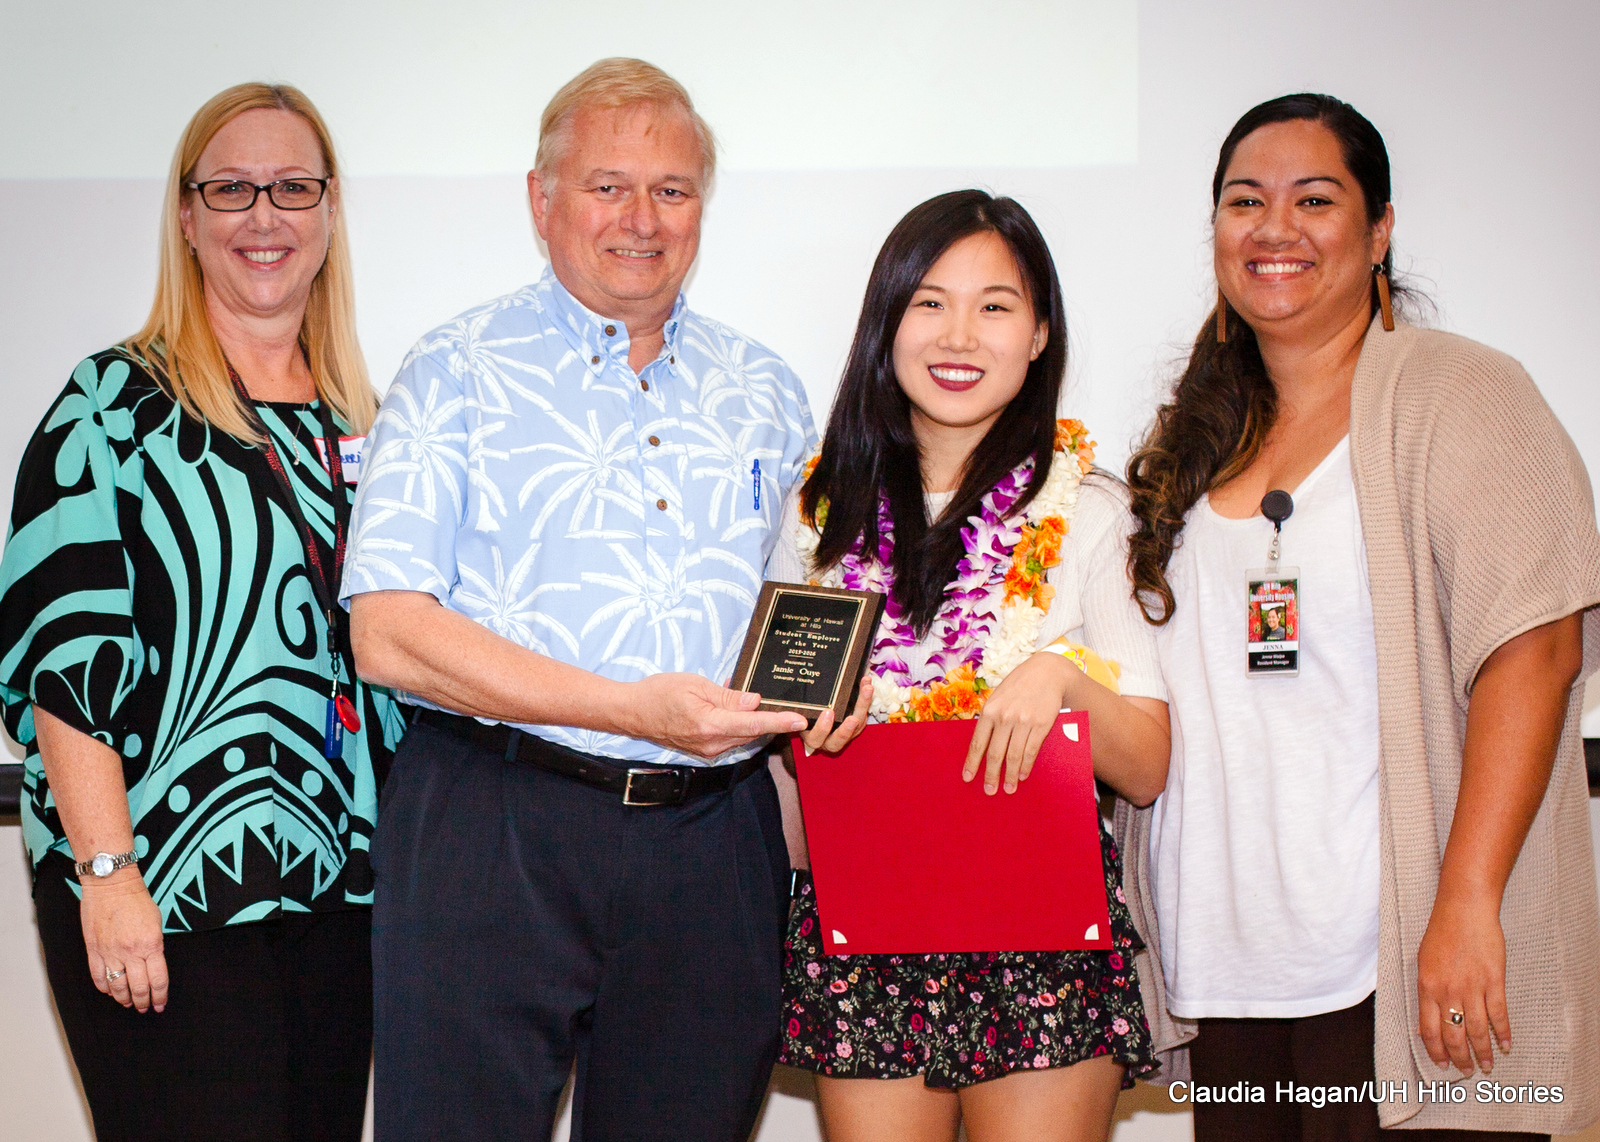 Sherry Padilla, Don Straney, Jaime Ouye, and Jenna Waipa.